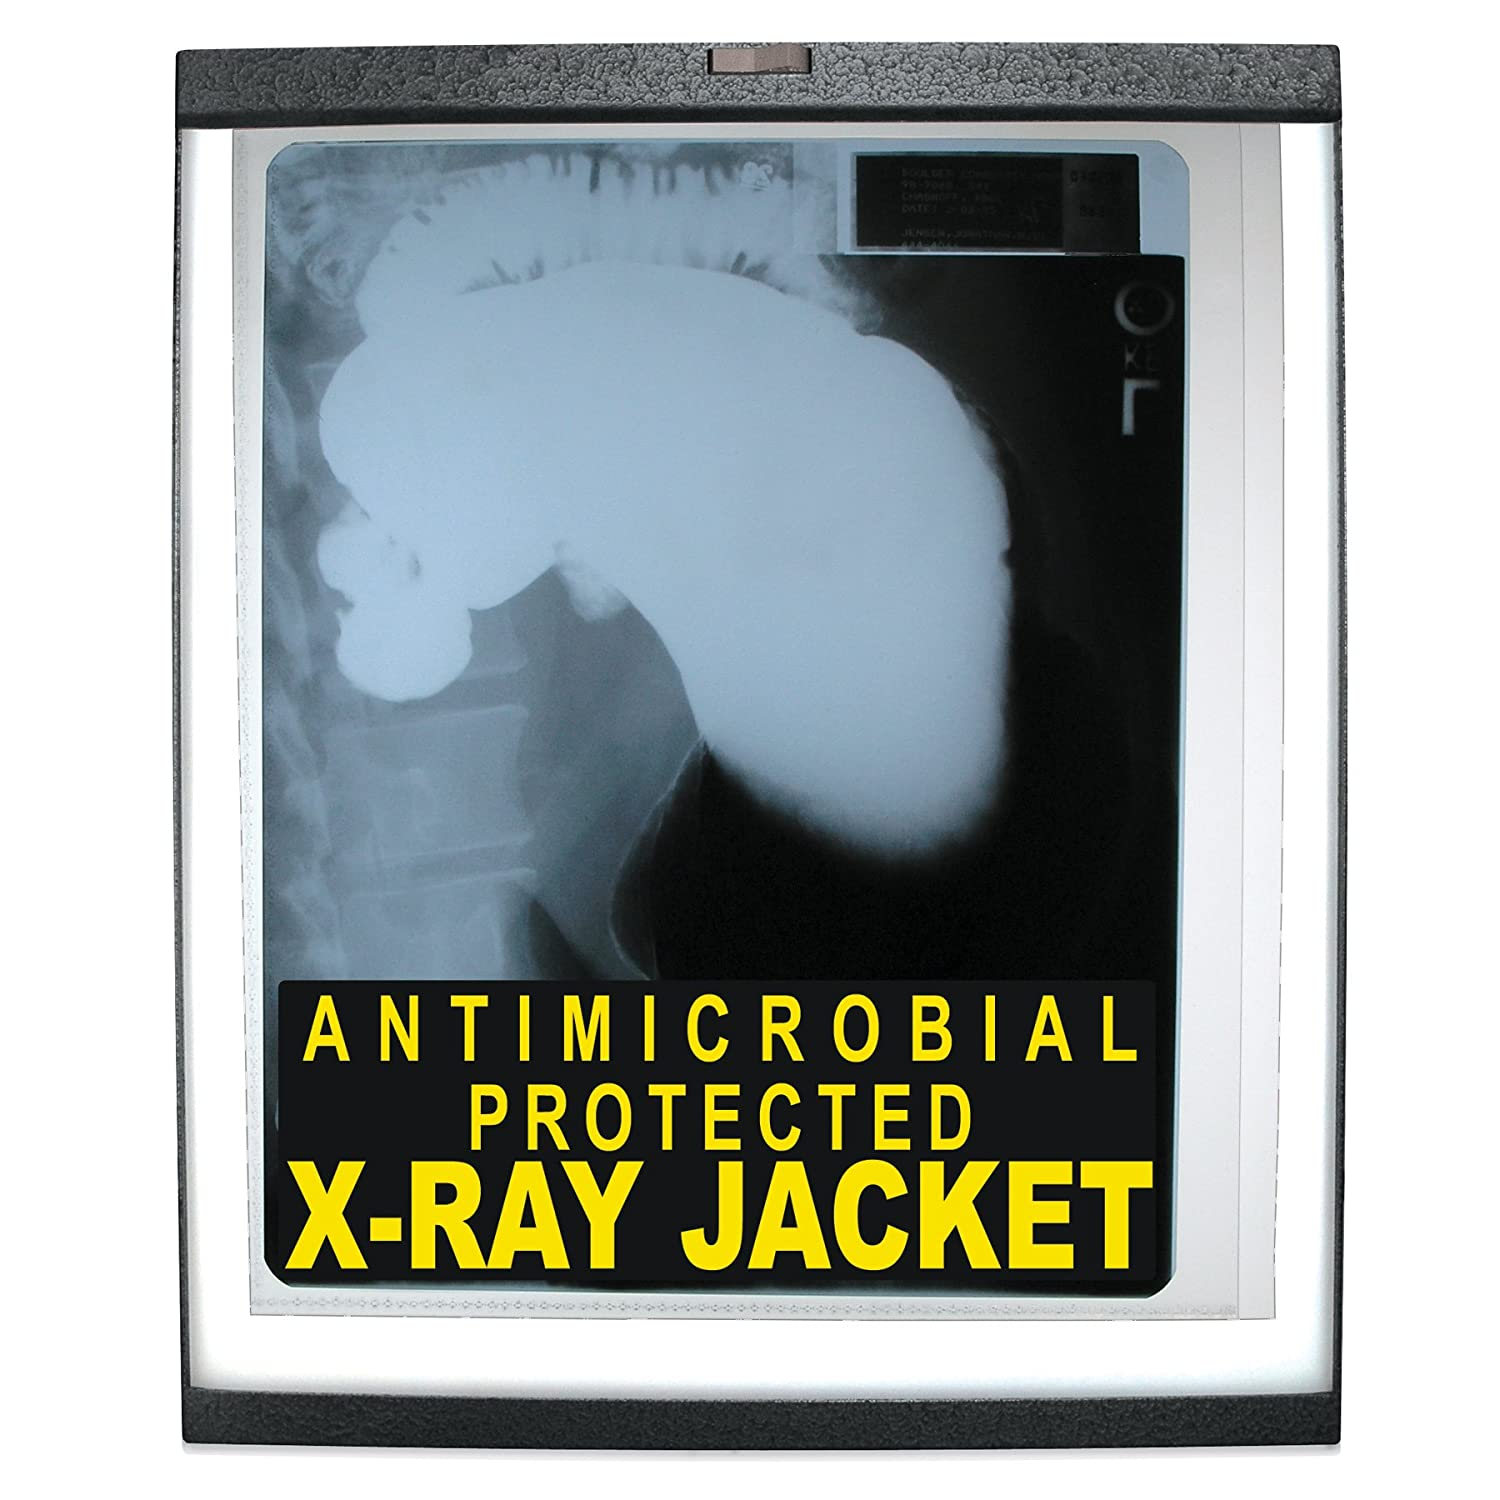 25 per Box Clear C-Line X-Ray Jackets with Antimicrobial Protection 56237 Open Long Side 12.25 x 10.5 Inches